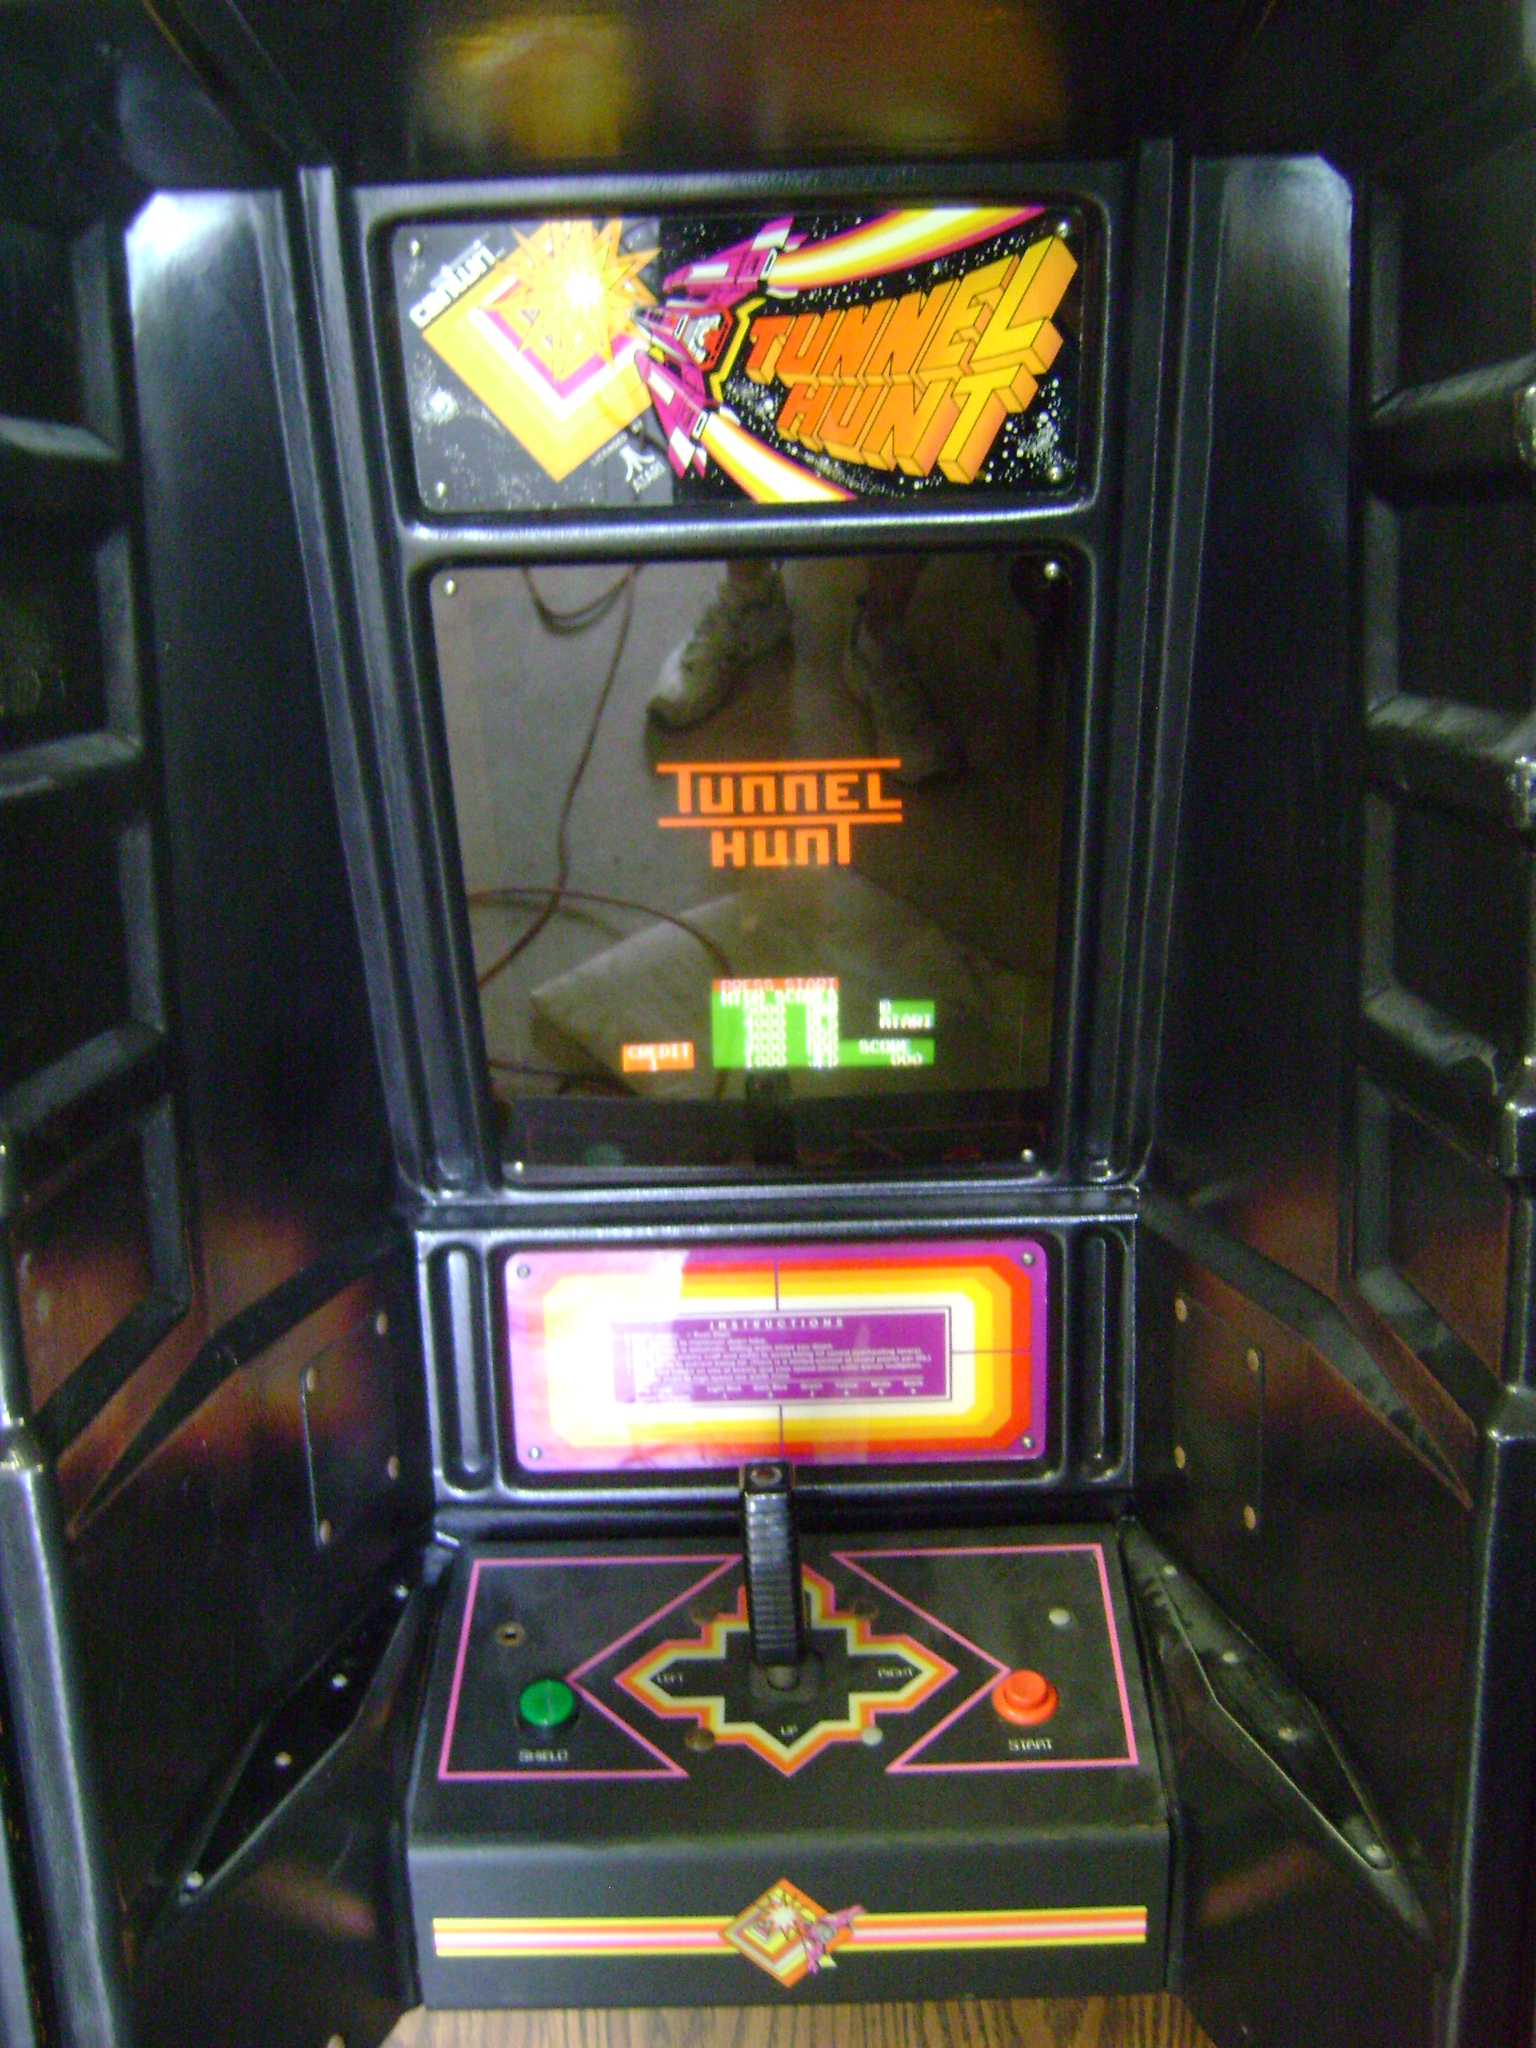 Tunnel Hunt arcade machine